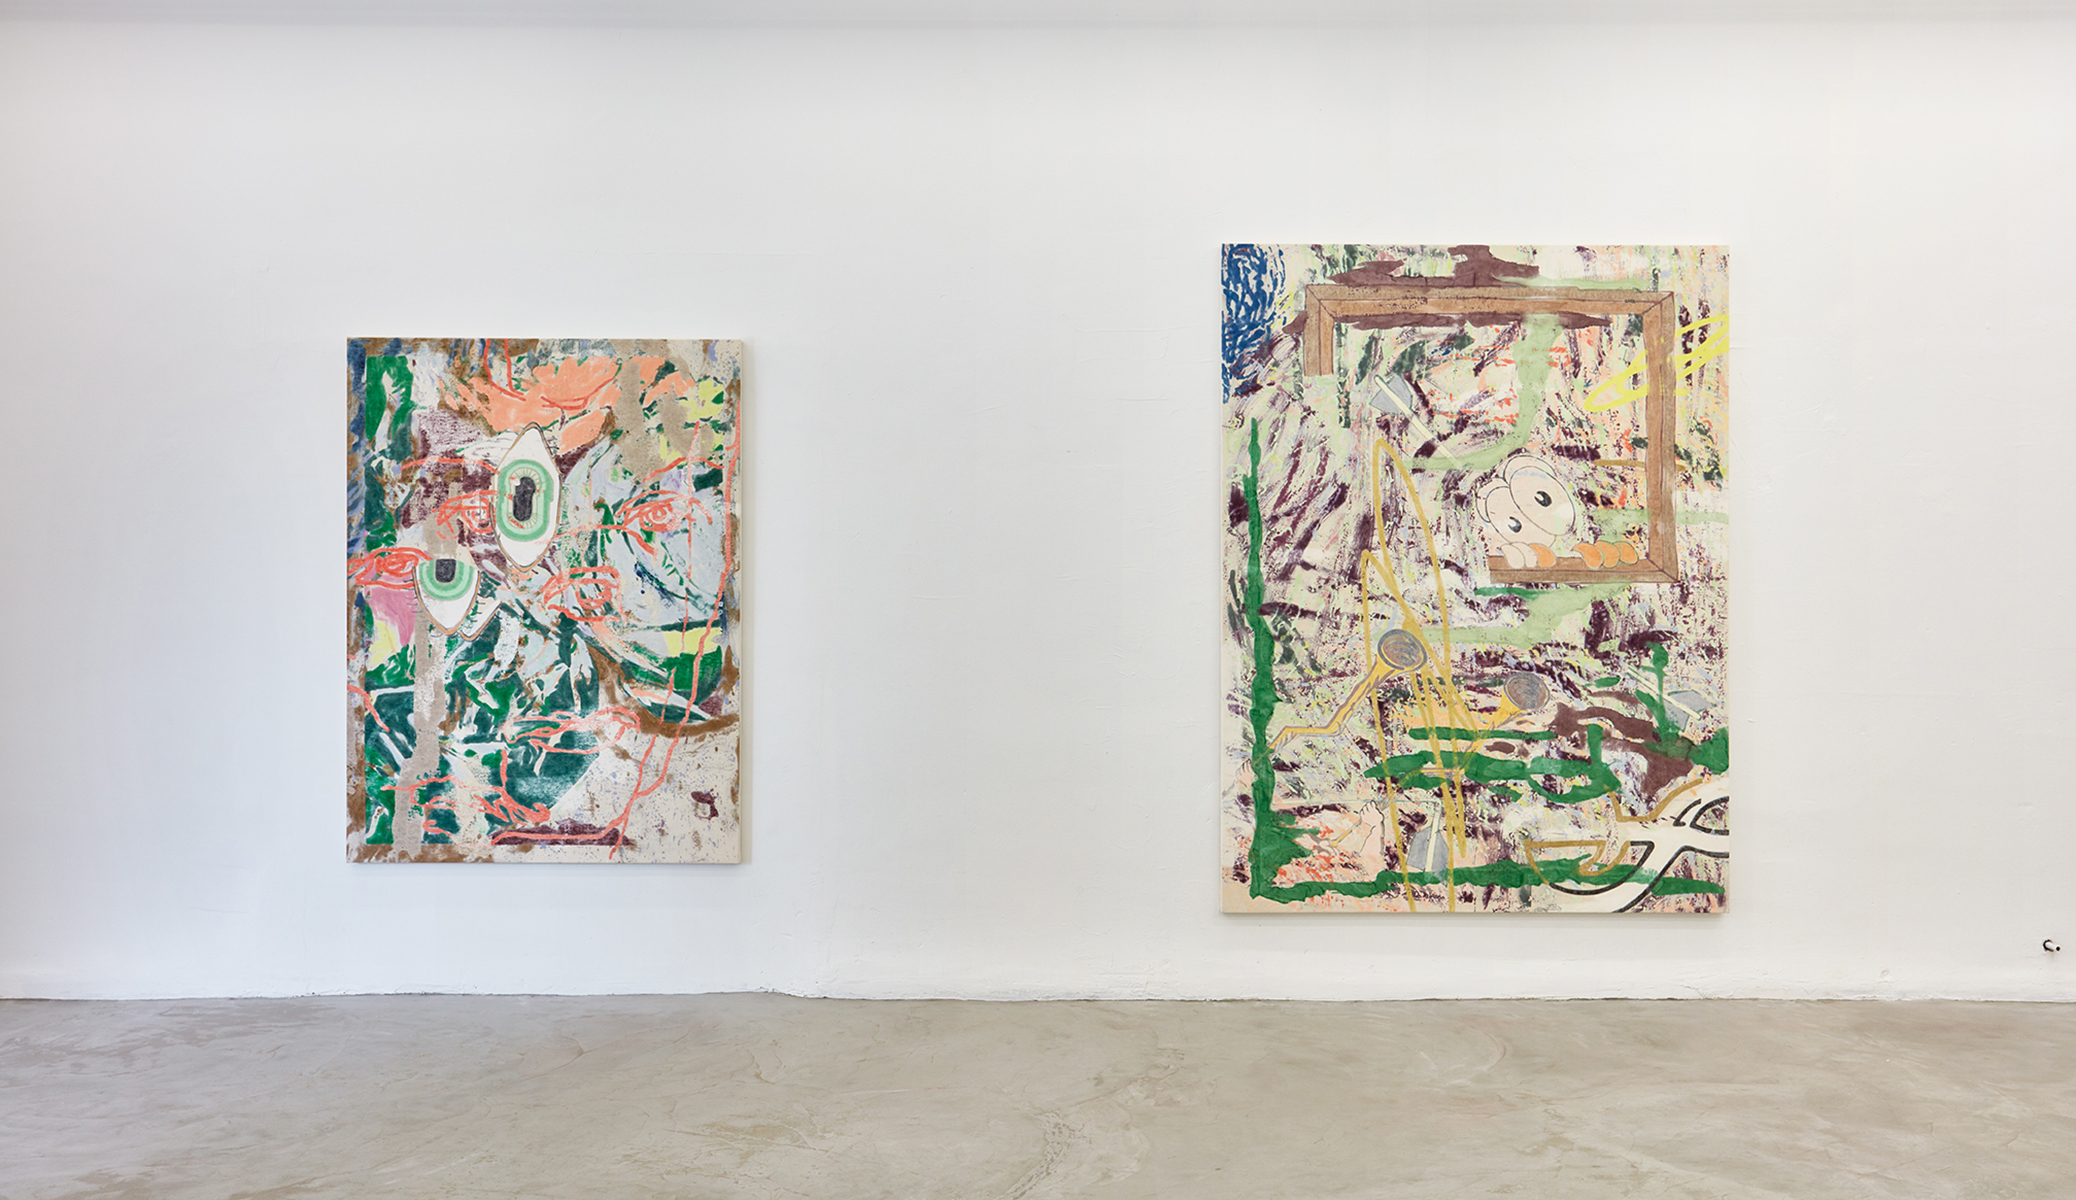 Installation View, Mier Gallery, Los Angeles